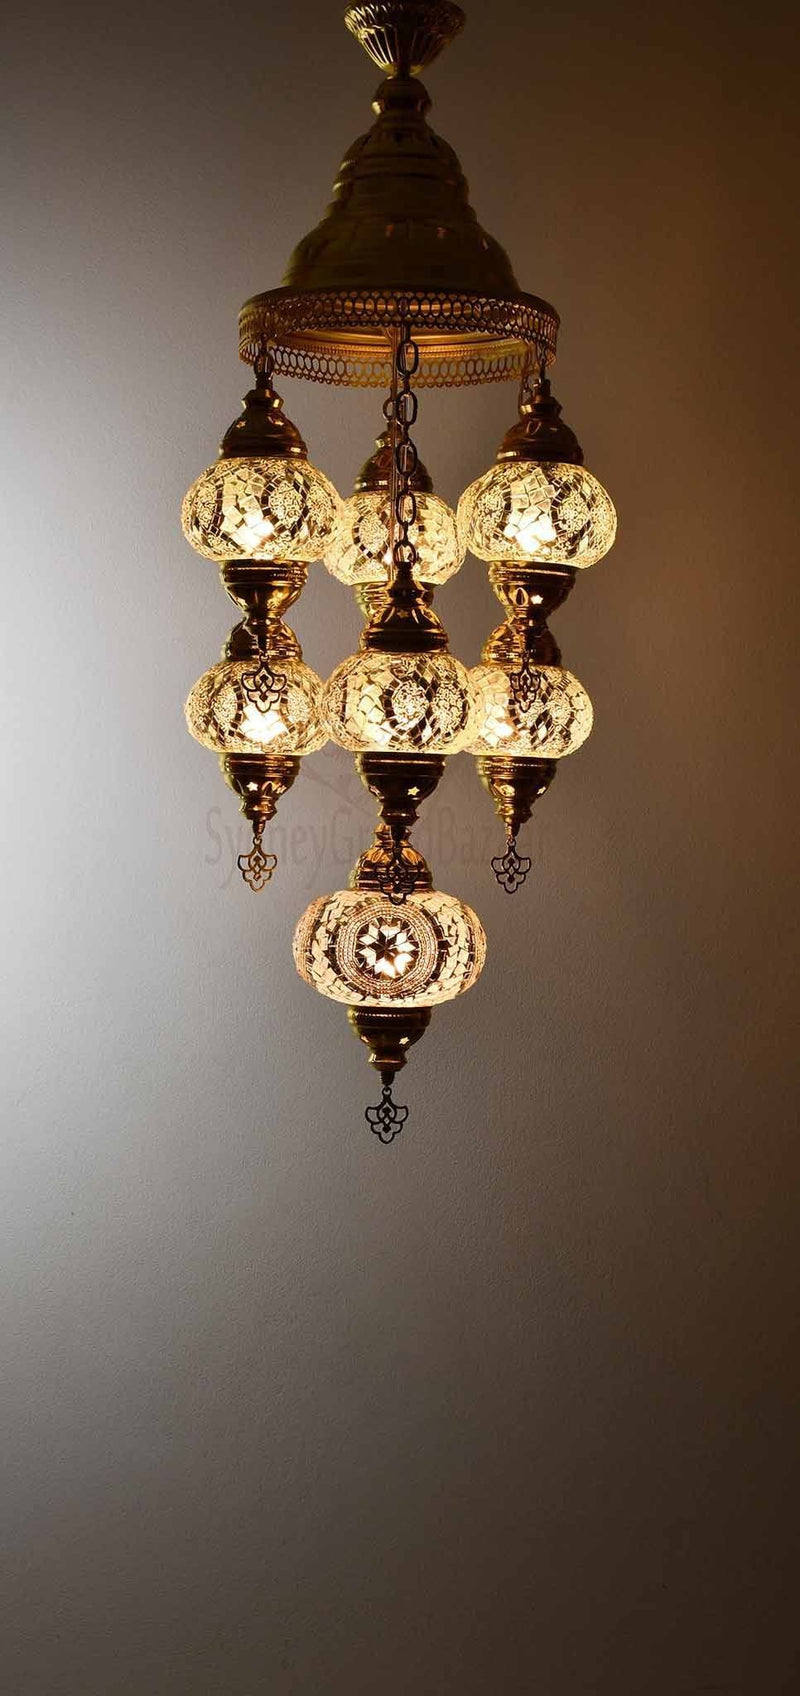 Turkish Mosaic Pendant Light 7 Globes in Gold Lighting Sydney Grand Bazaar Clear white